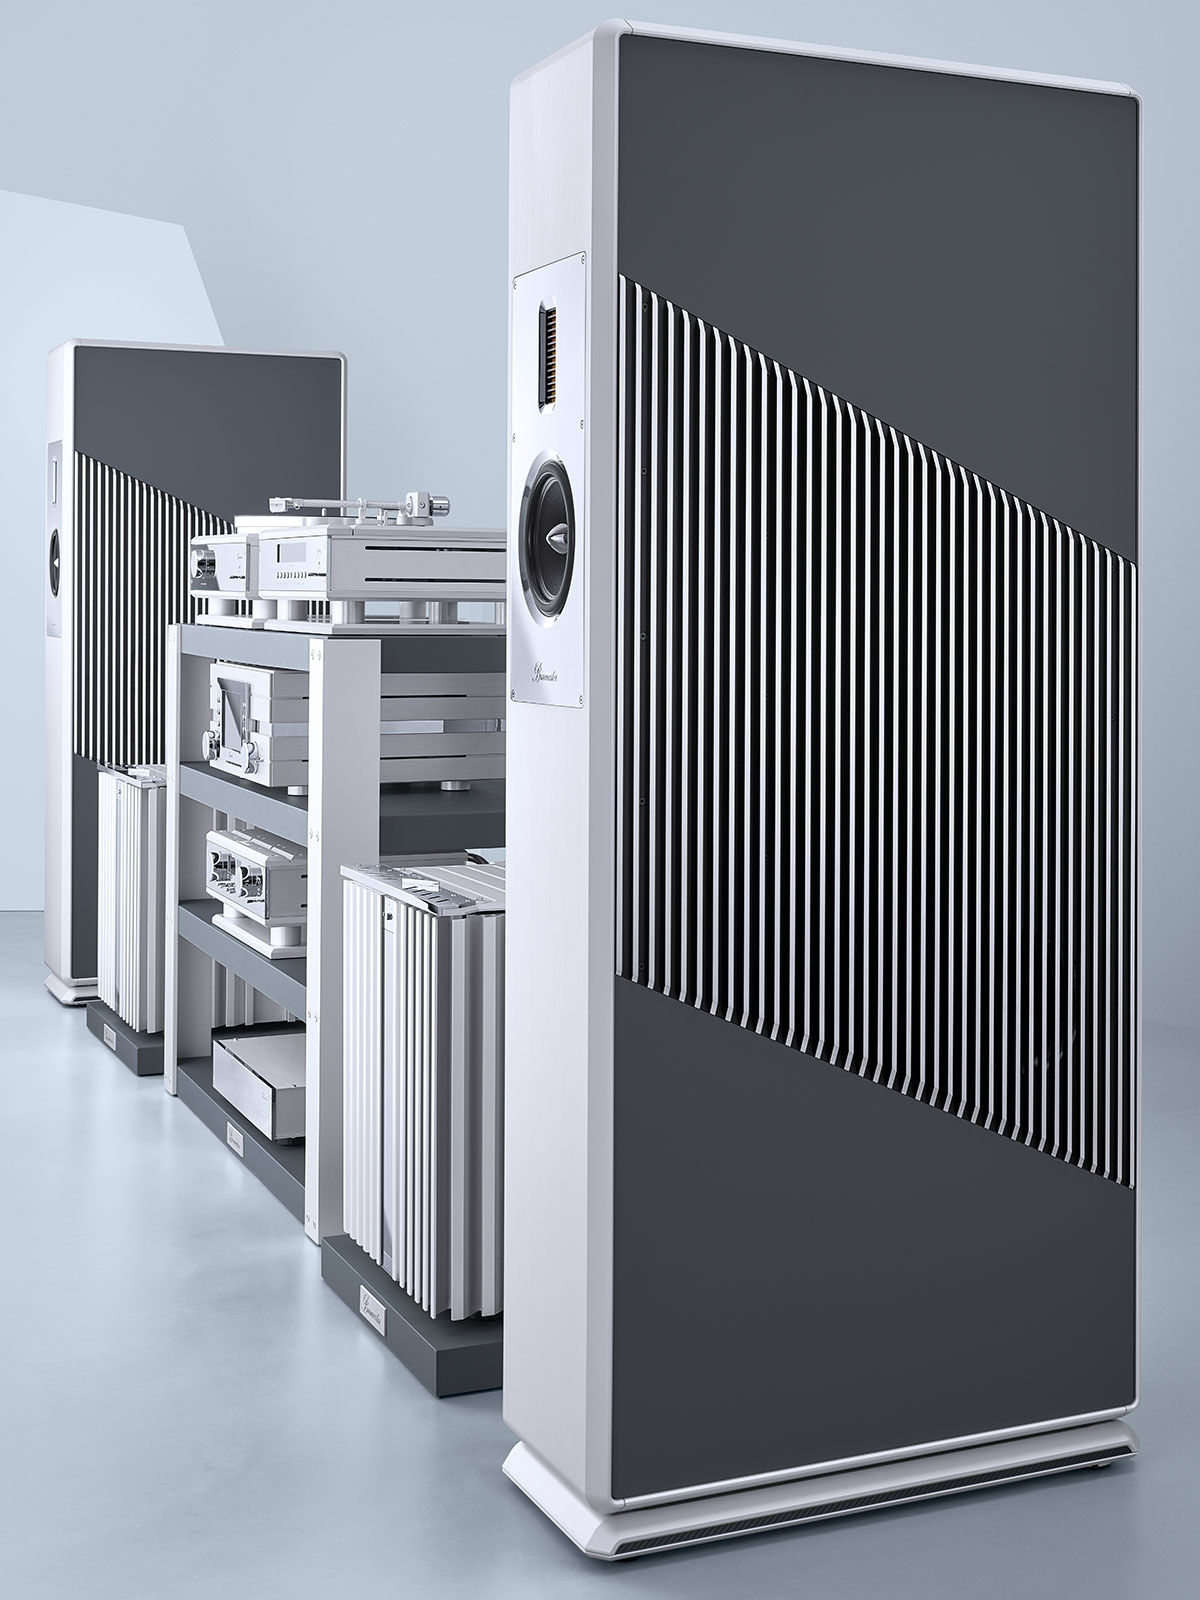 Burmester BC150 speakers and 217 turntable